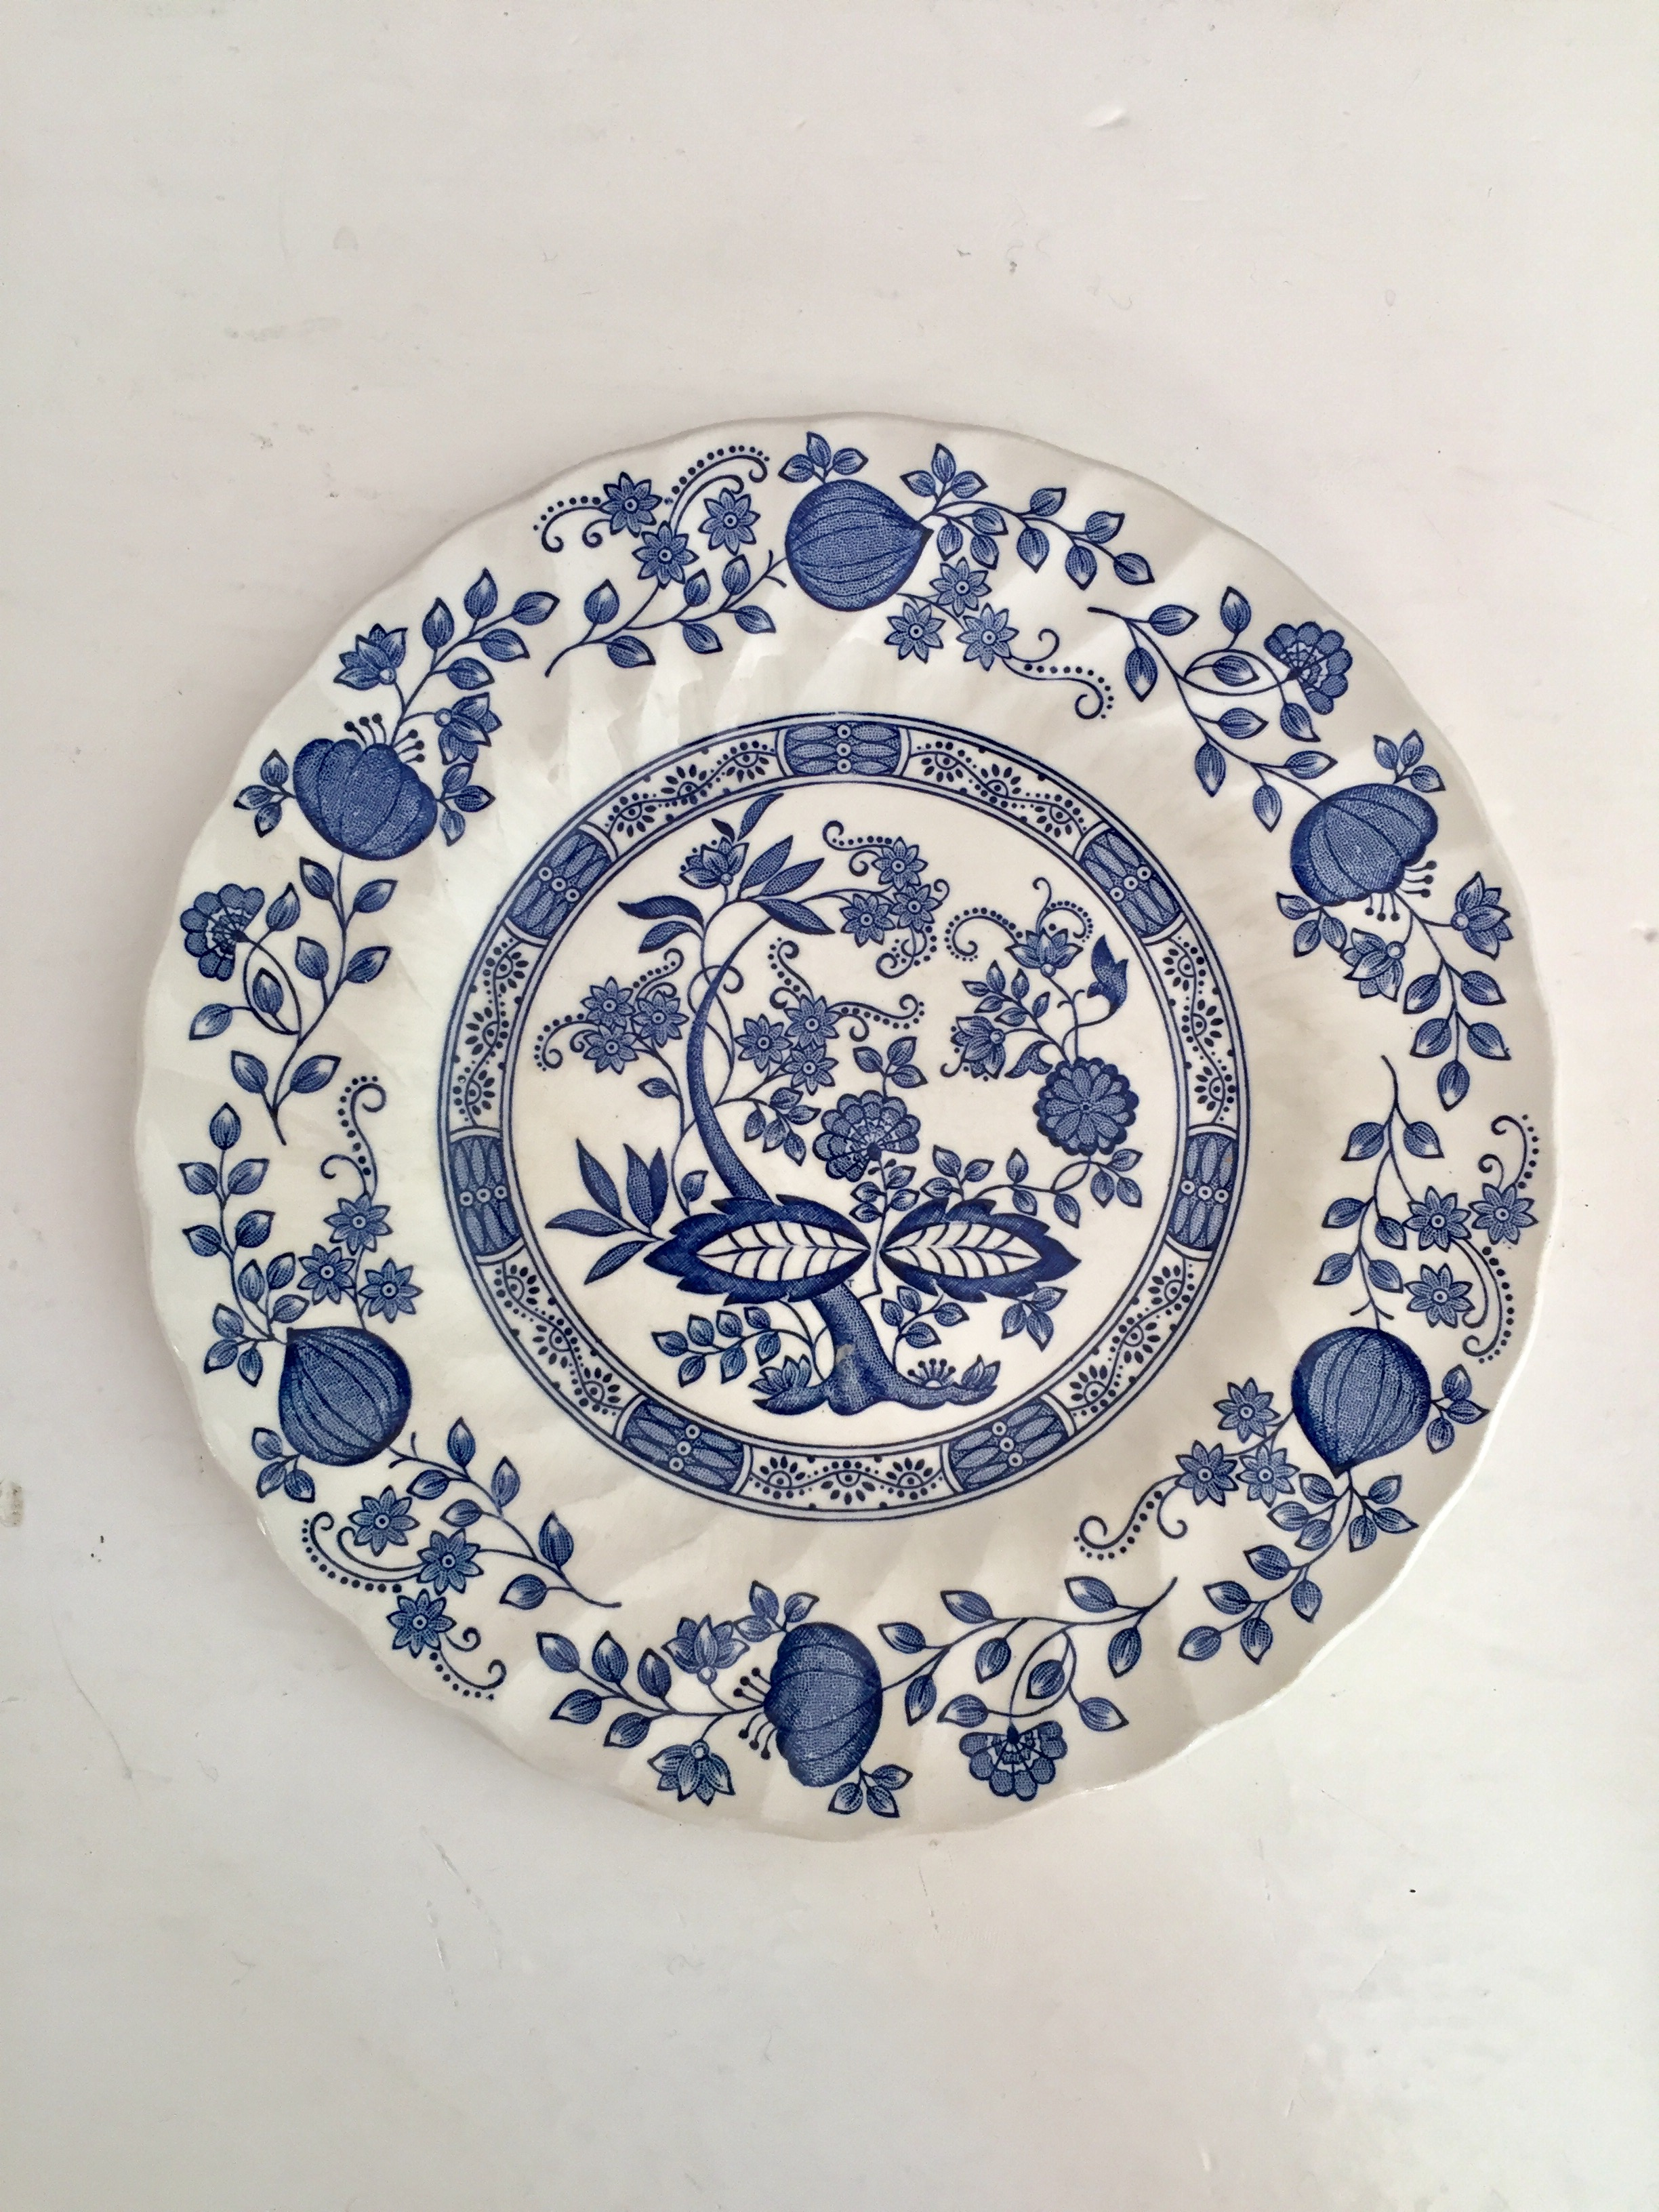 BLUE ONION MYOTT MEAKIN PLATES & The Vintage Laundry u2014 BLUE ONION MYOTT MEAKIN PLATES